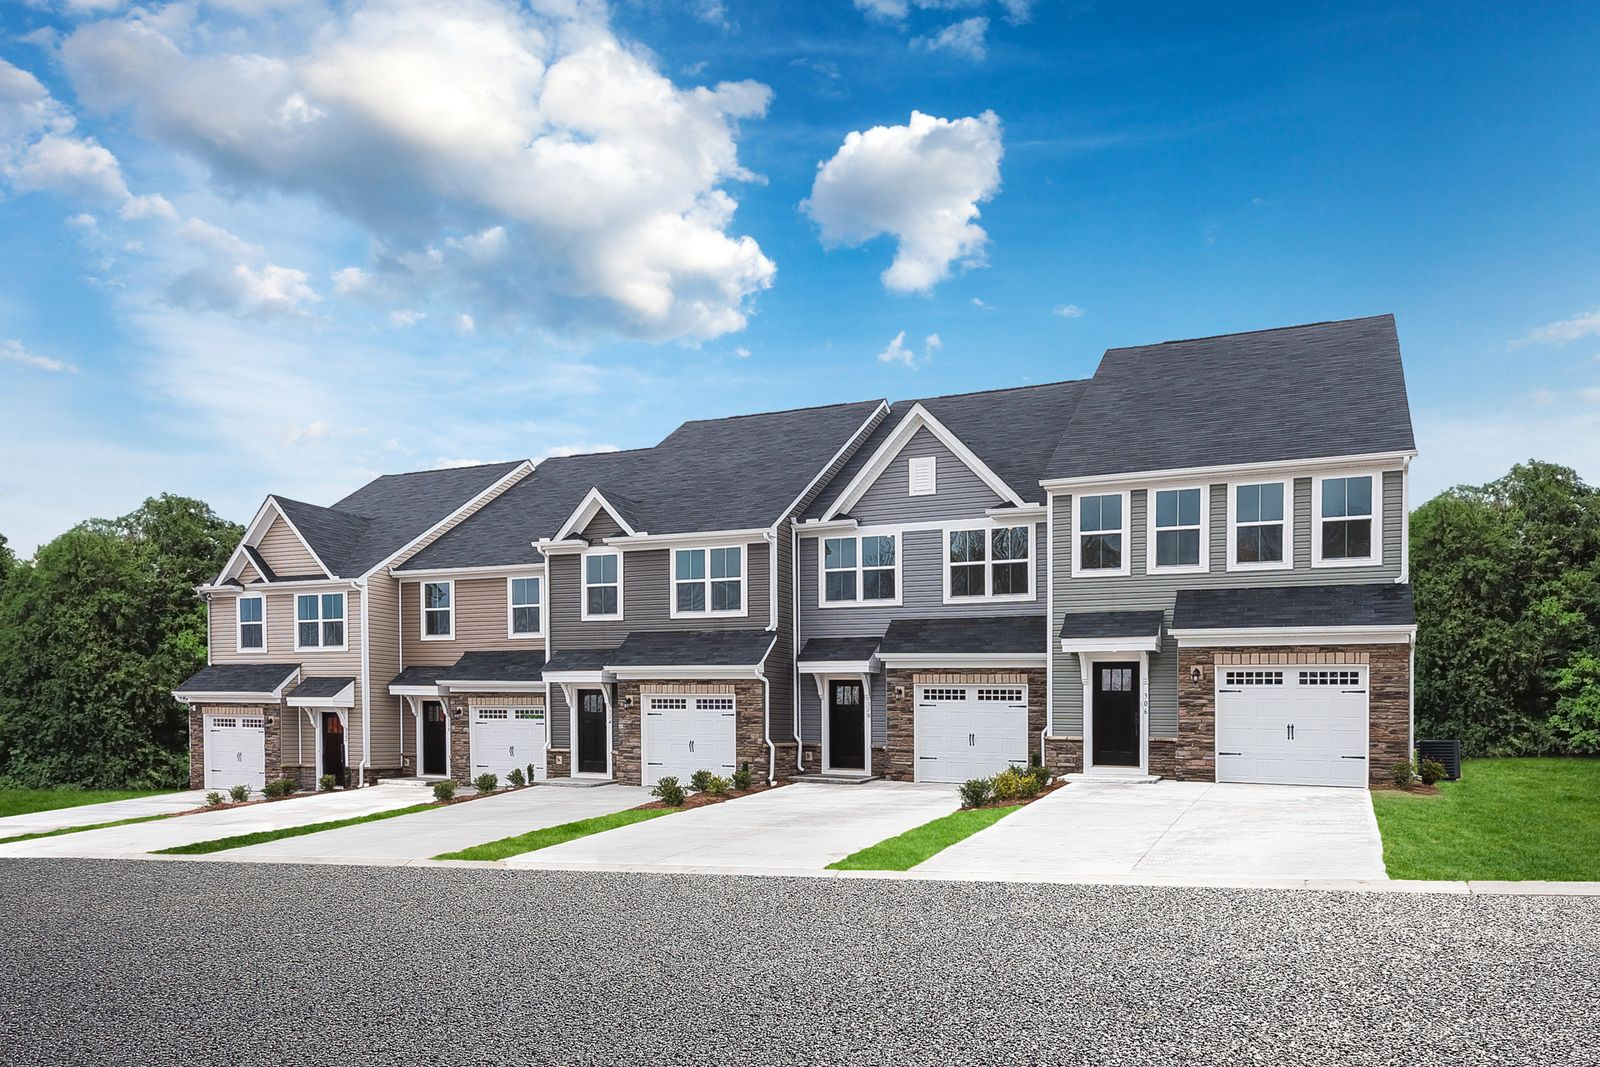 Live a low-maintenance lifestyle in your new townhome for less than rent.:Located 3 minutes to I-85, Wade Hampton Blvd, & 1 mile to Downtown Greer. Interested?Schedule a visit with us!